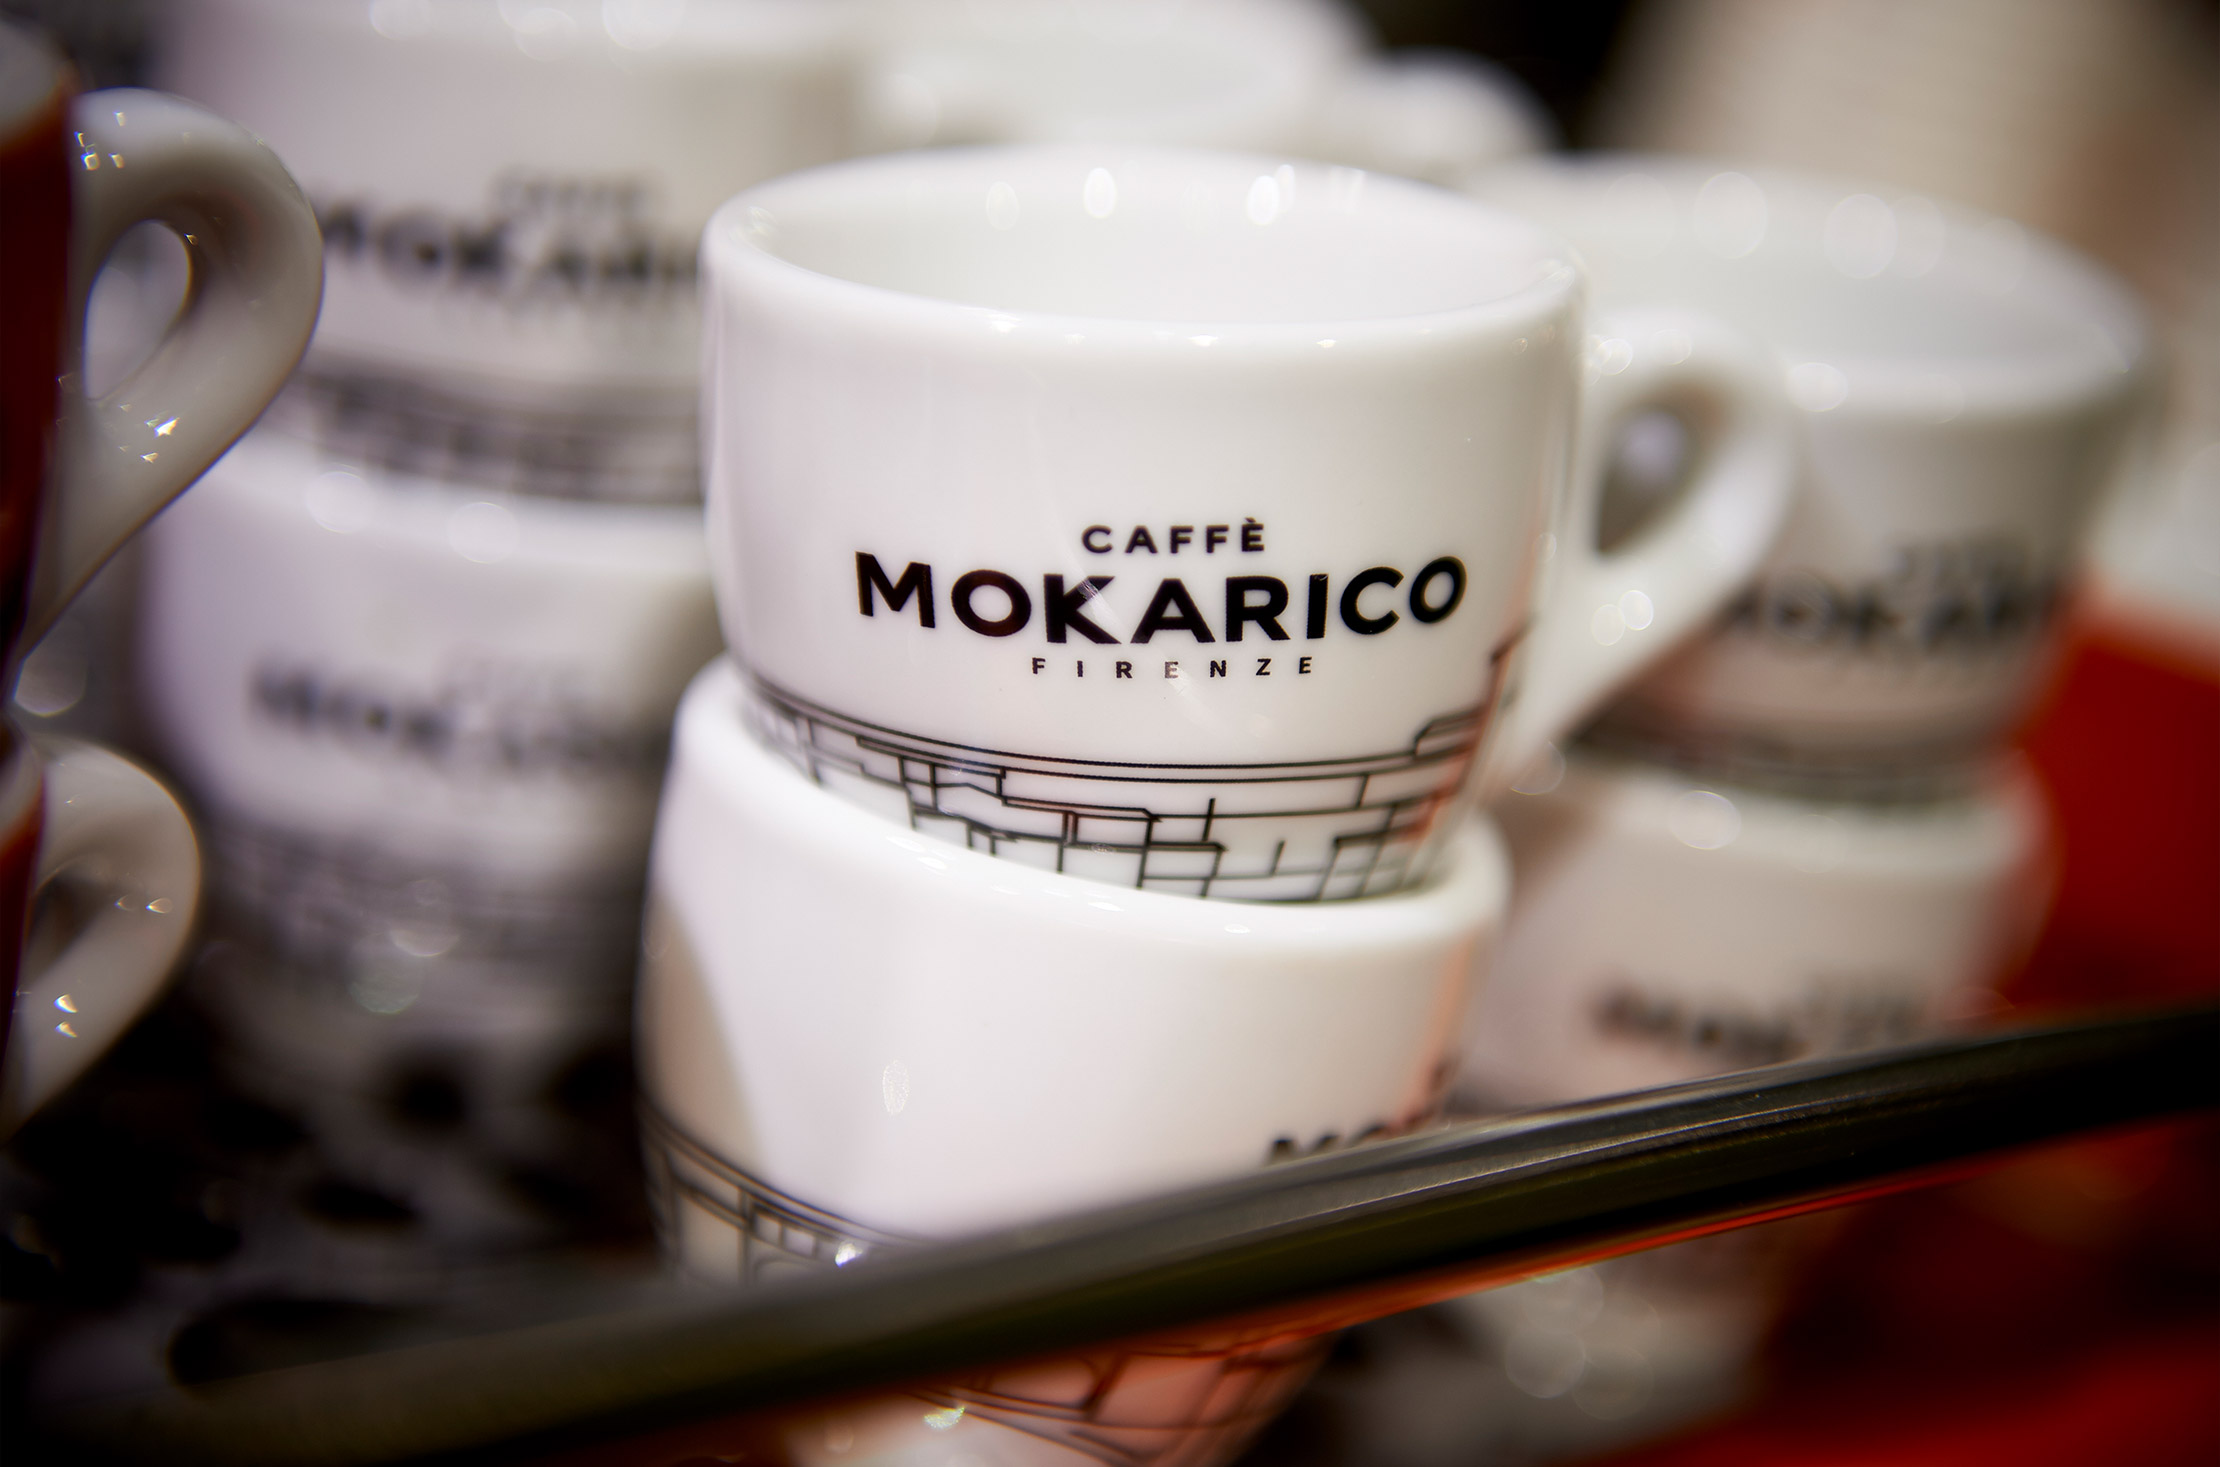 Mokarico coffee cup